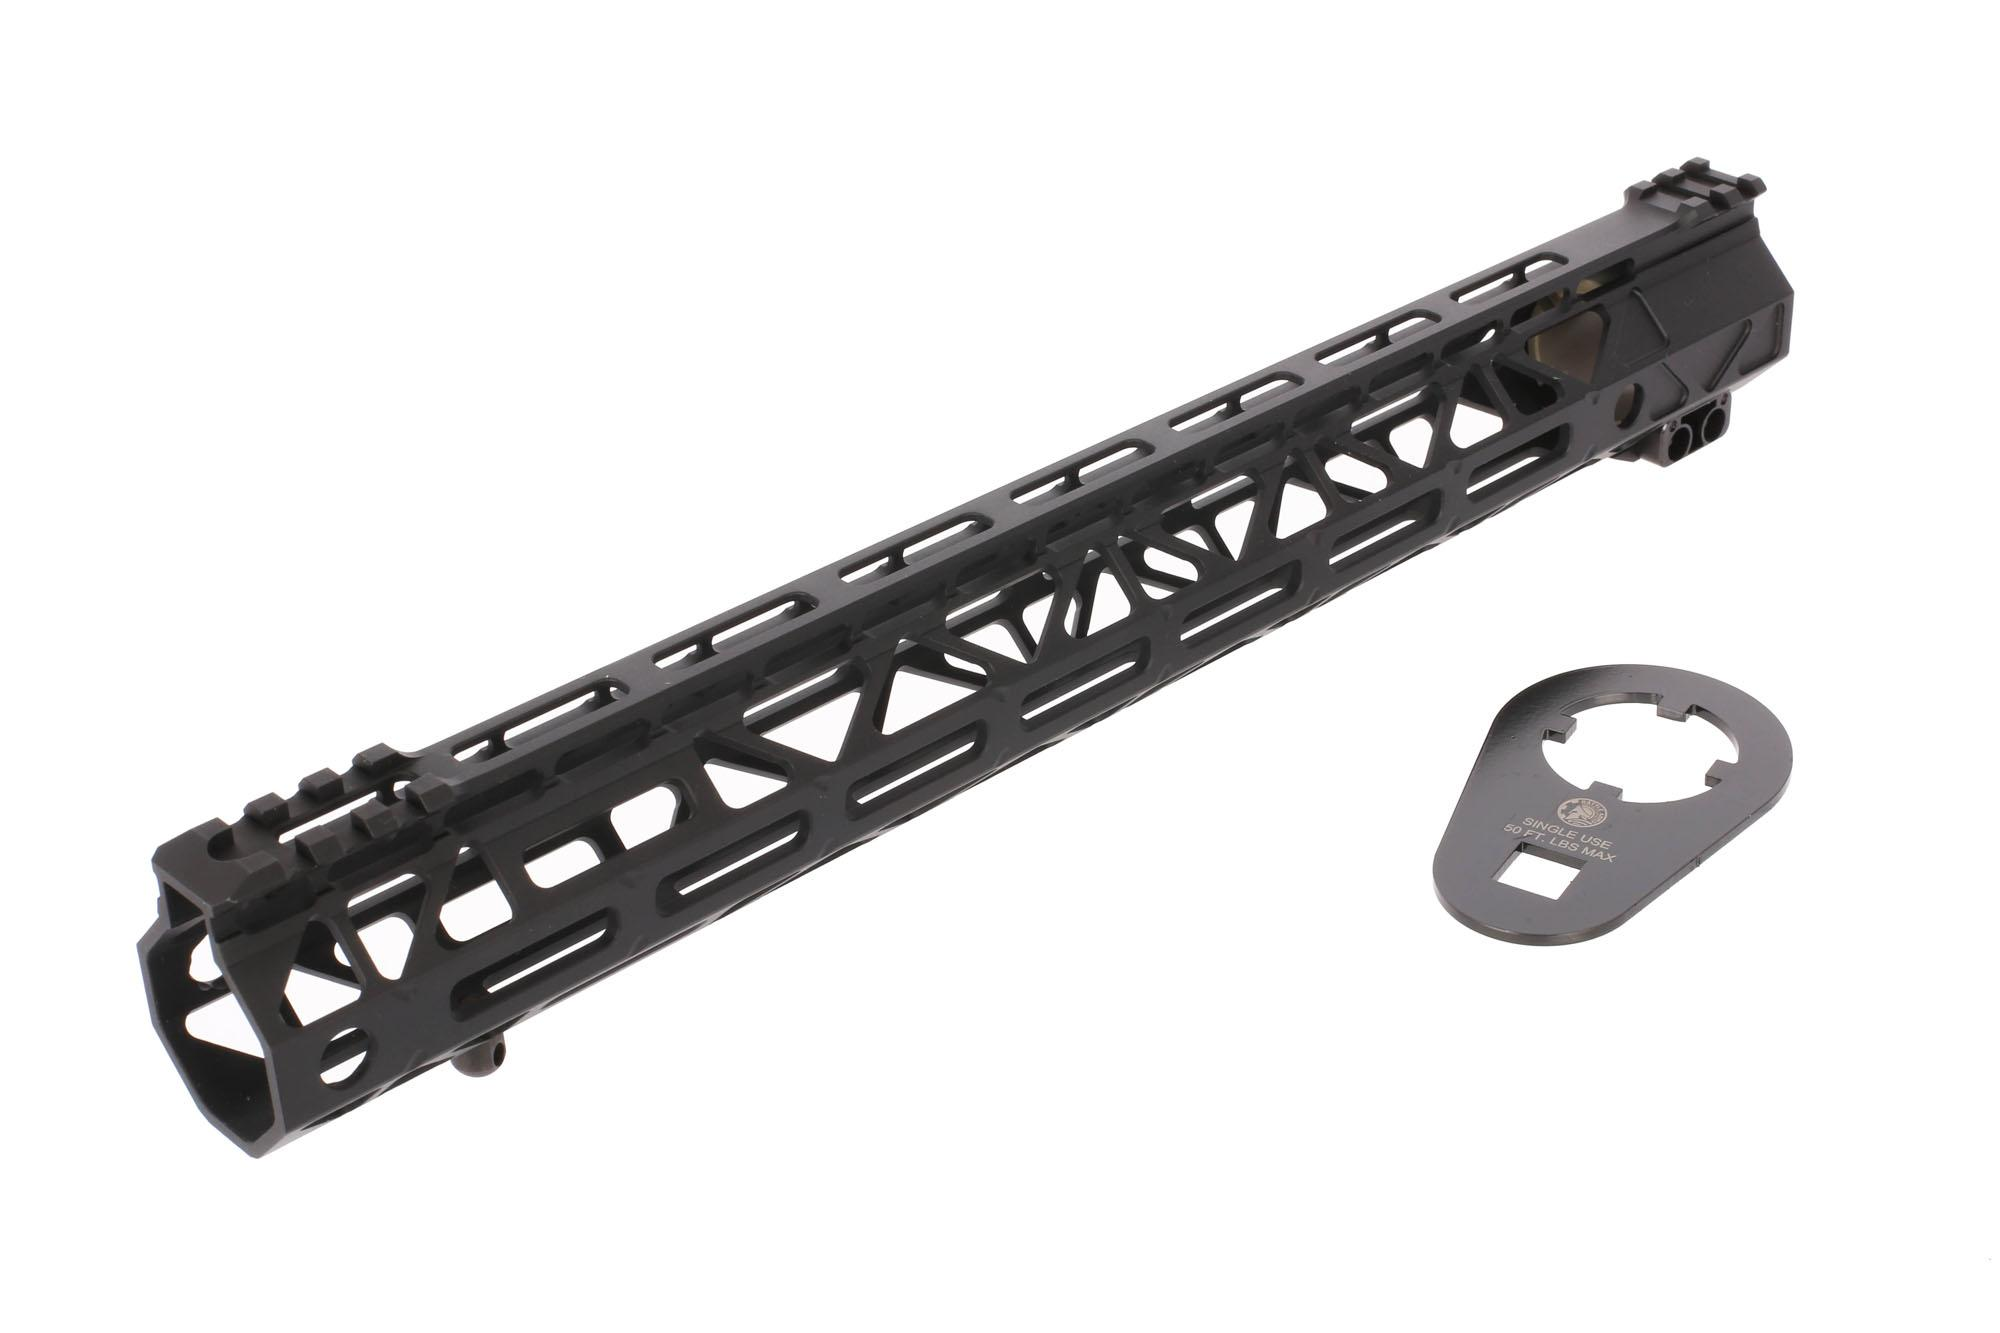 Battle Arms Development 15in RIGIDRAIL Freefloat lightweight AR-15 handguard ships with barrel nut wrench